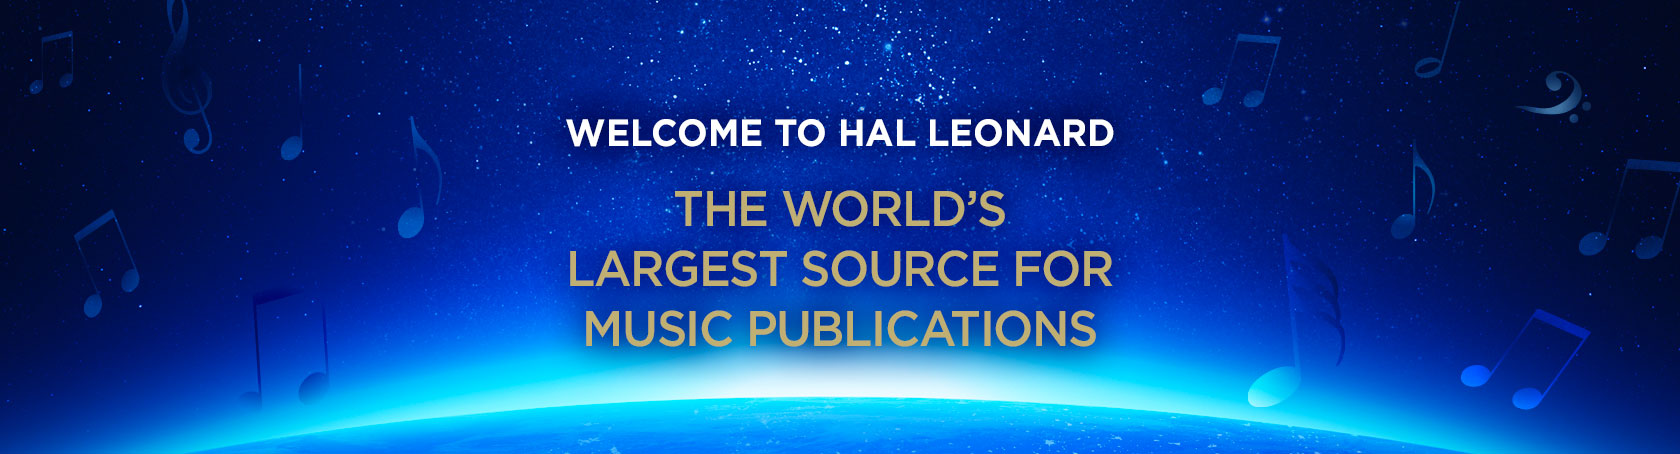 Hal Leonard The World's Largest Source for Music Publications